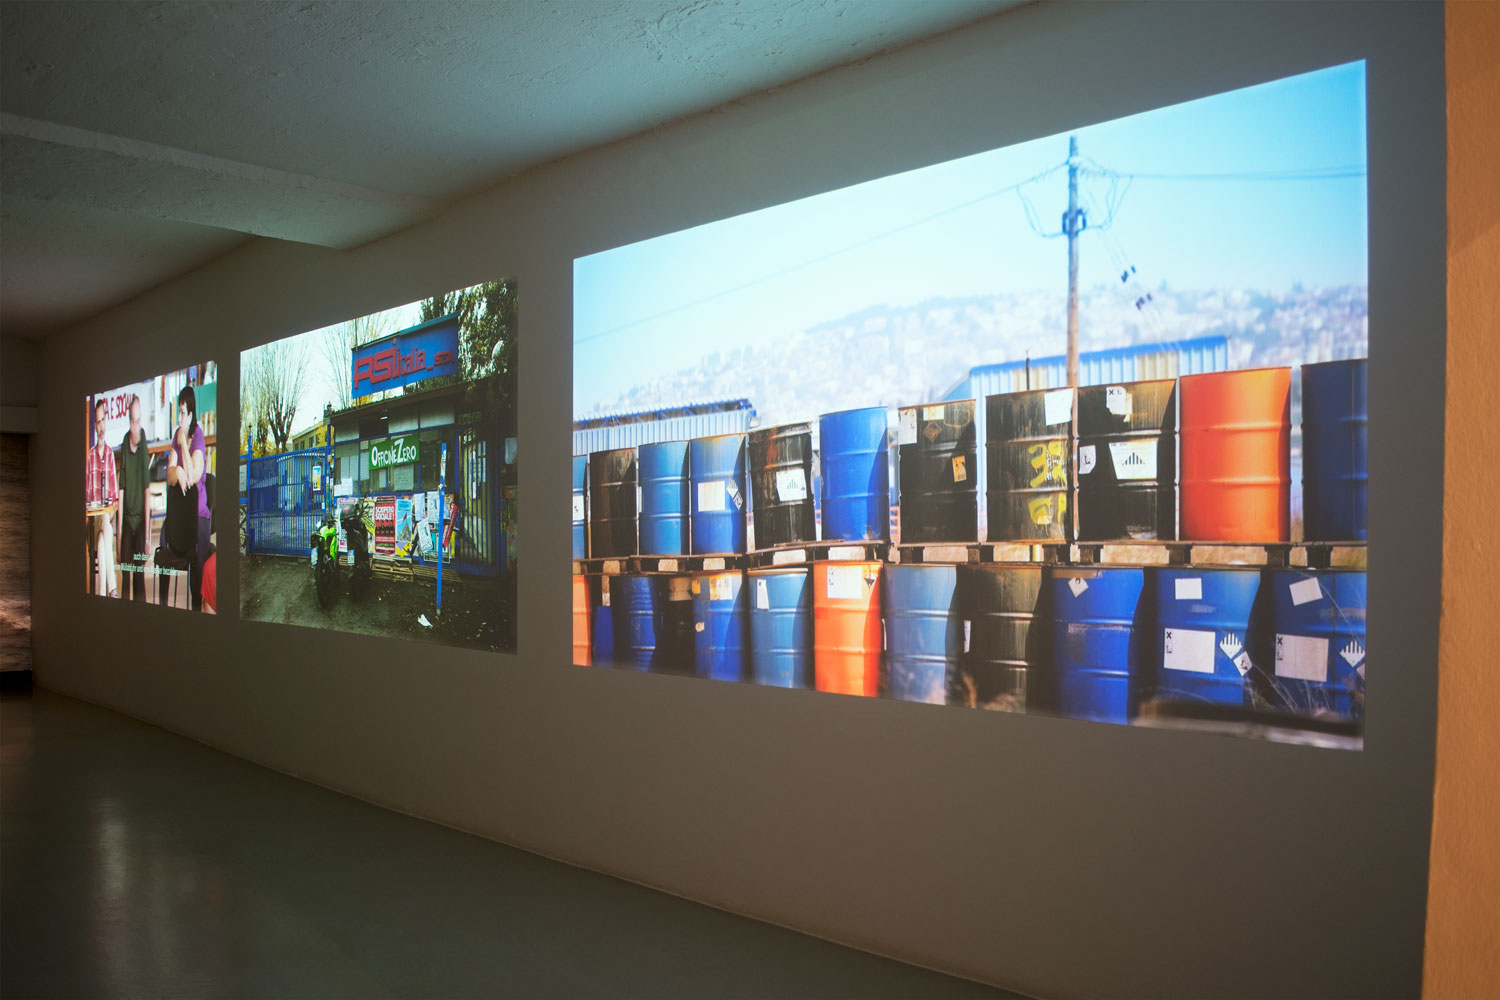 Oliver Ressler, Everything Under Control, Installation view, photo by aneres, 2016